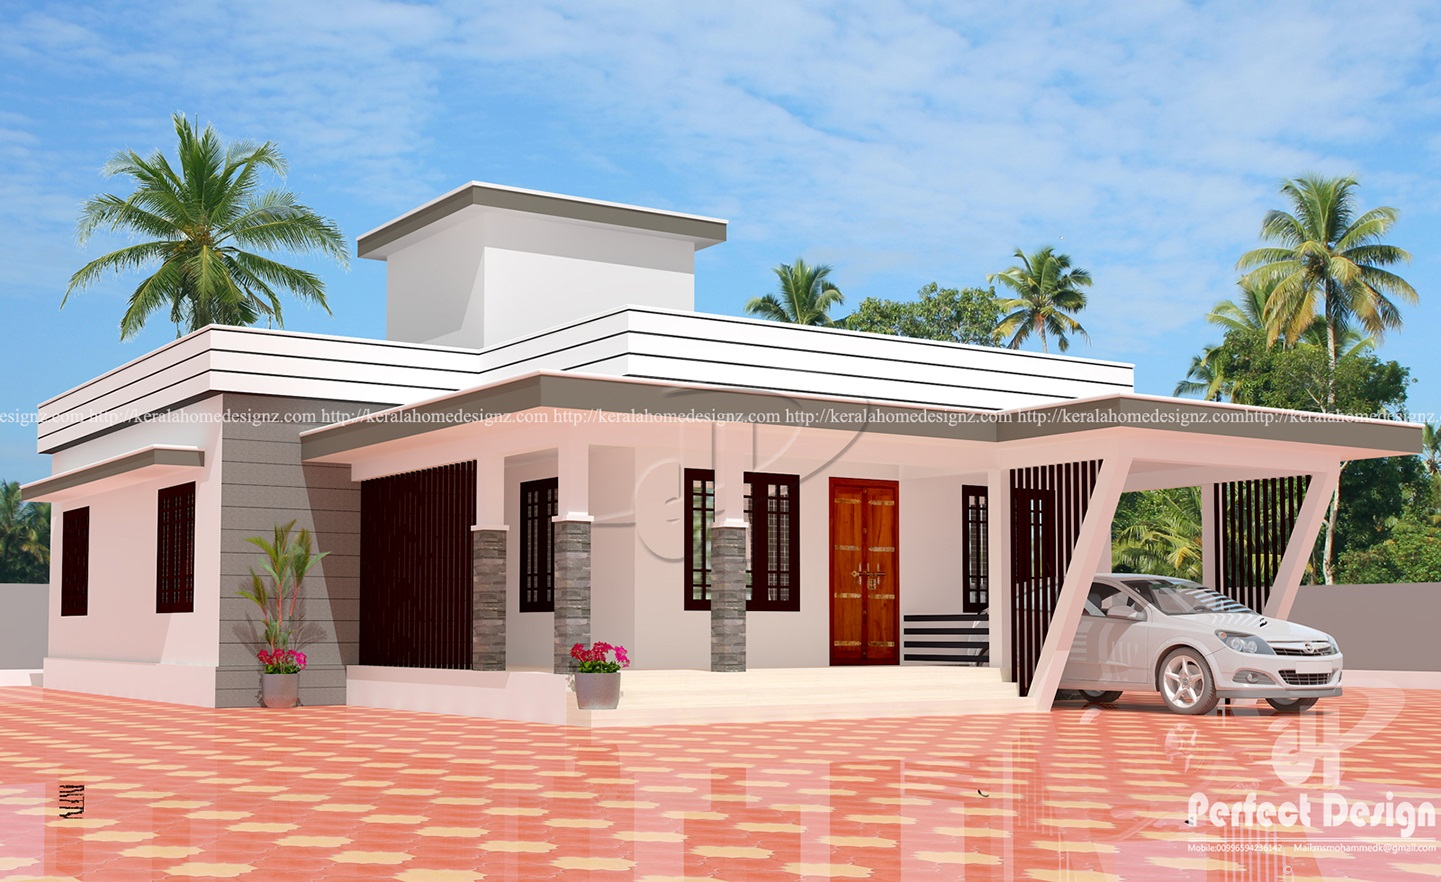 3 bedroom modern flat roof house layout kerala home design for Modern three bedroom house plans